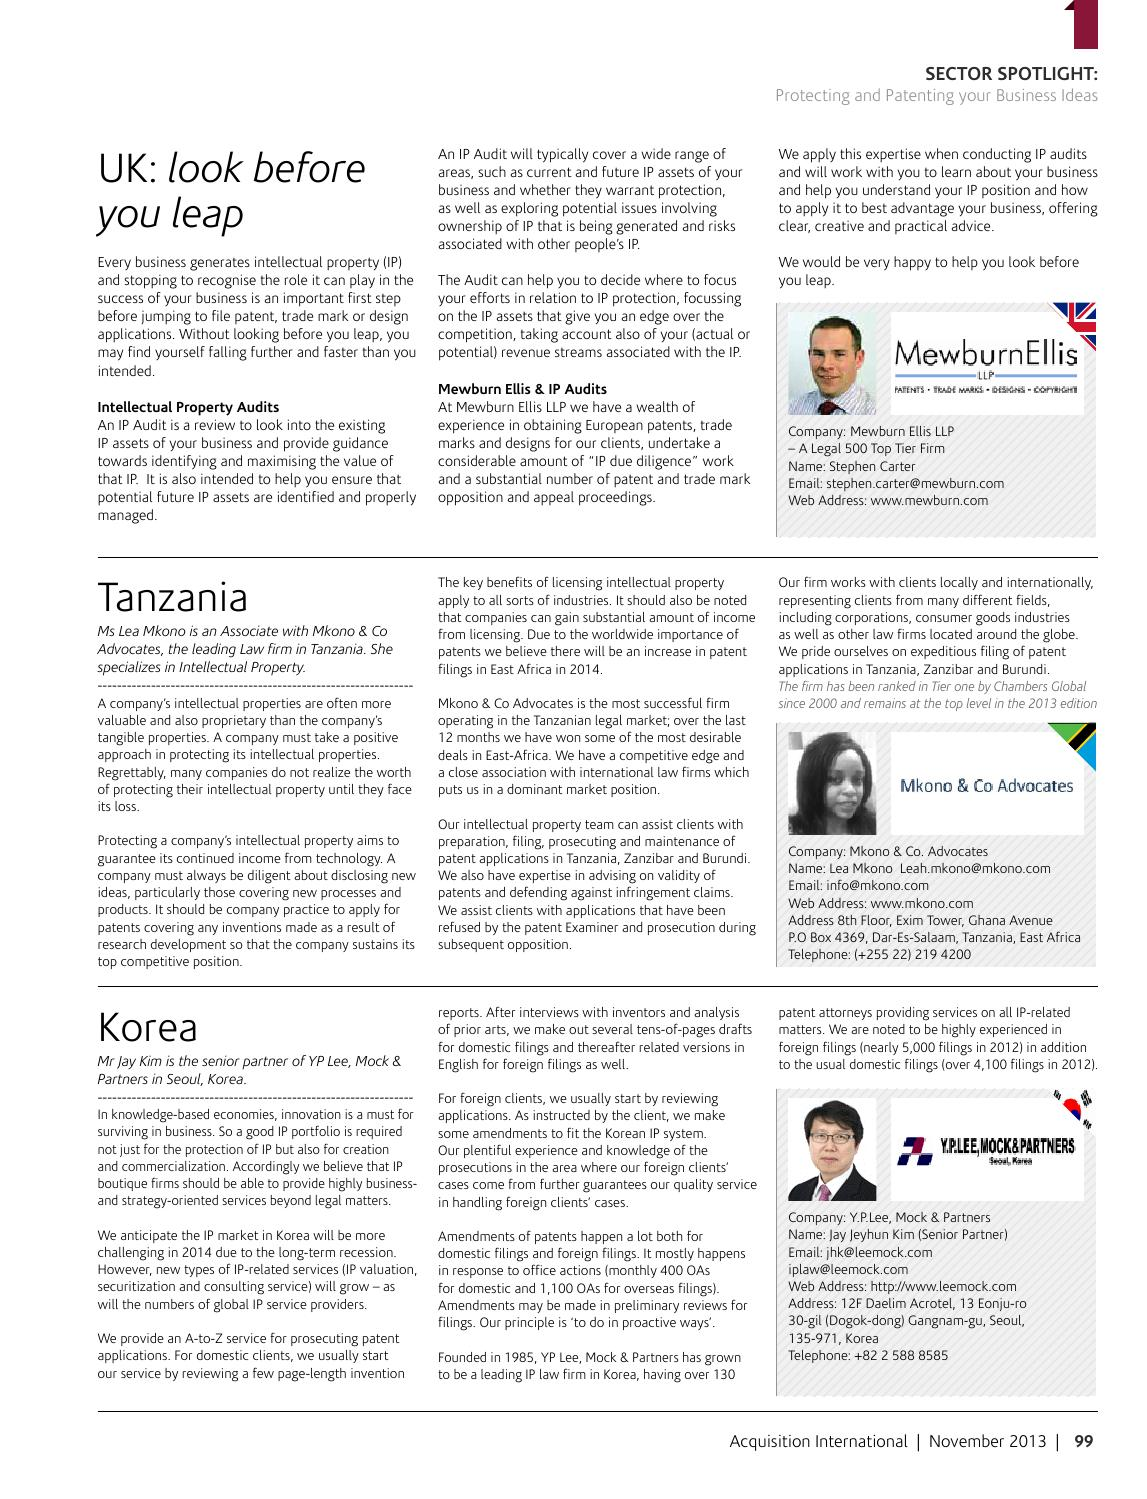 Acquisition international November 2013 by AI Global Media